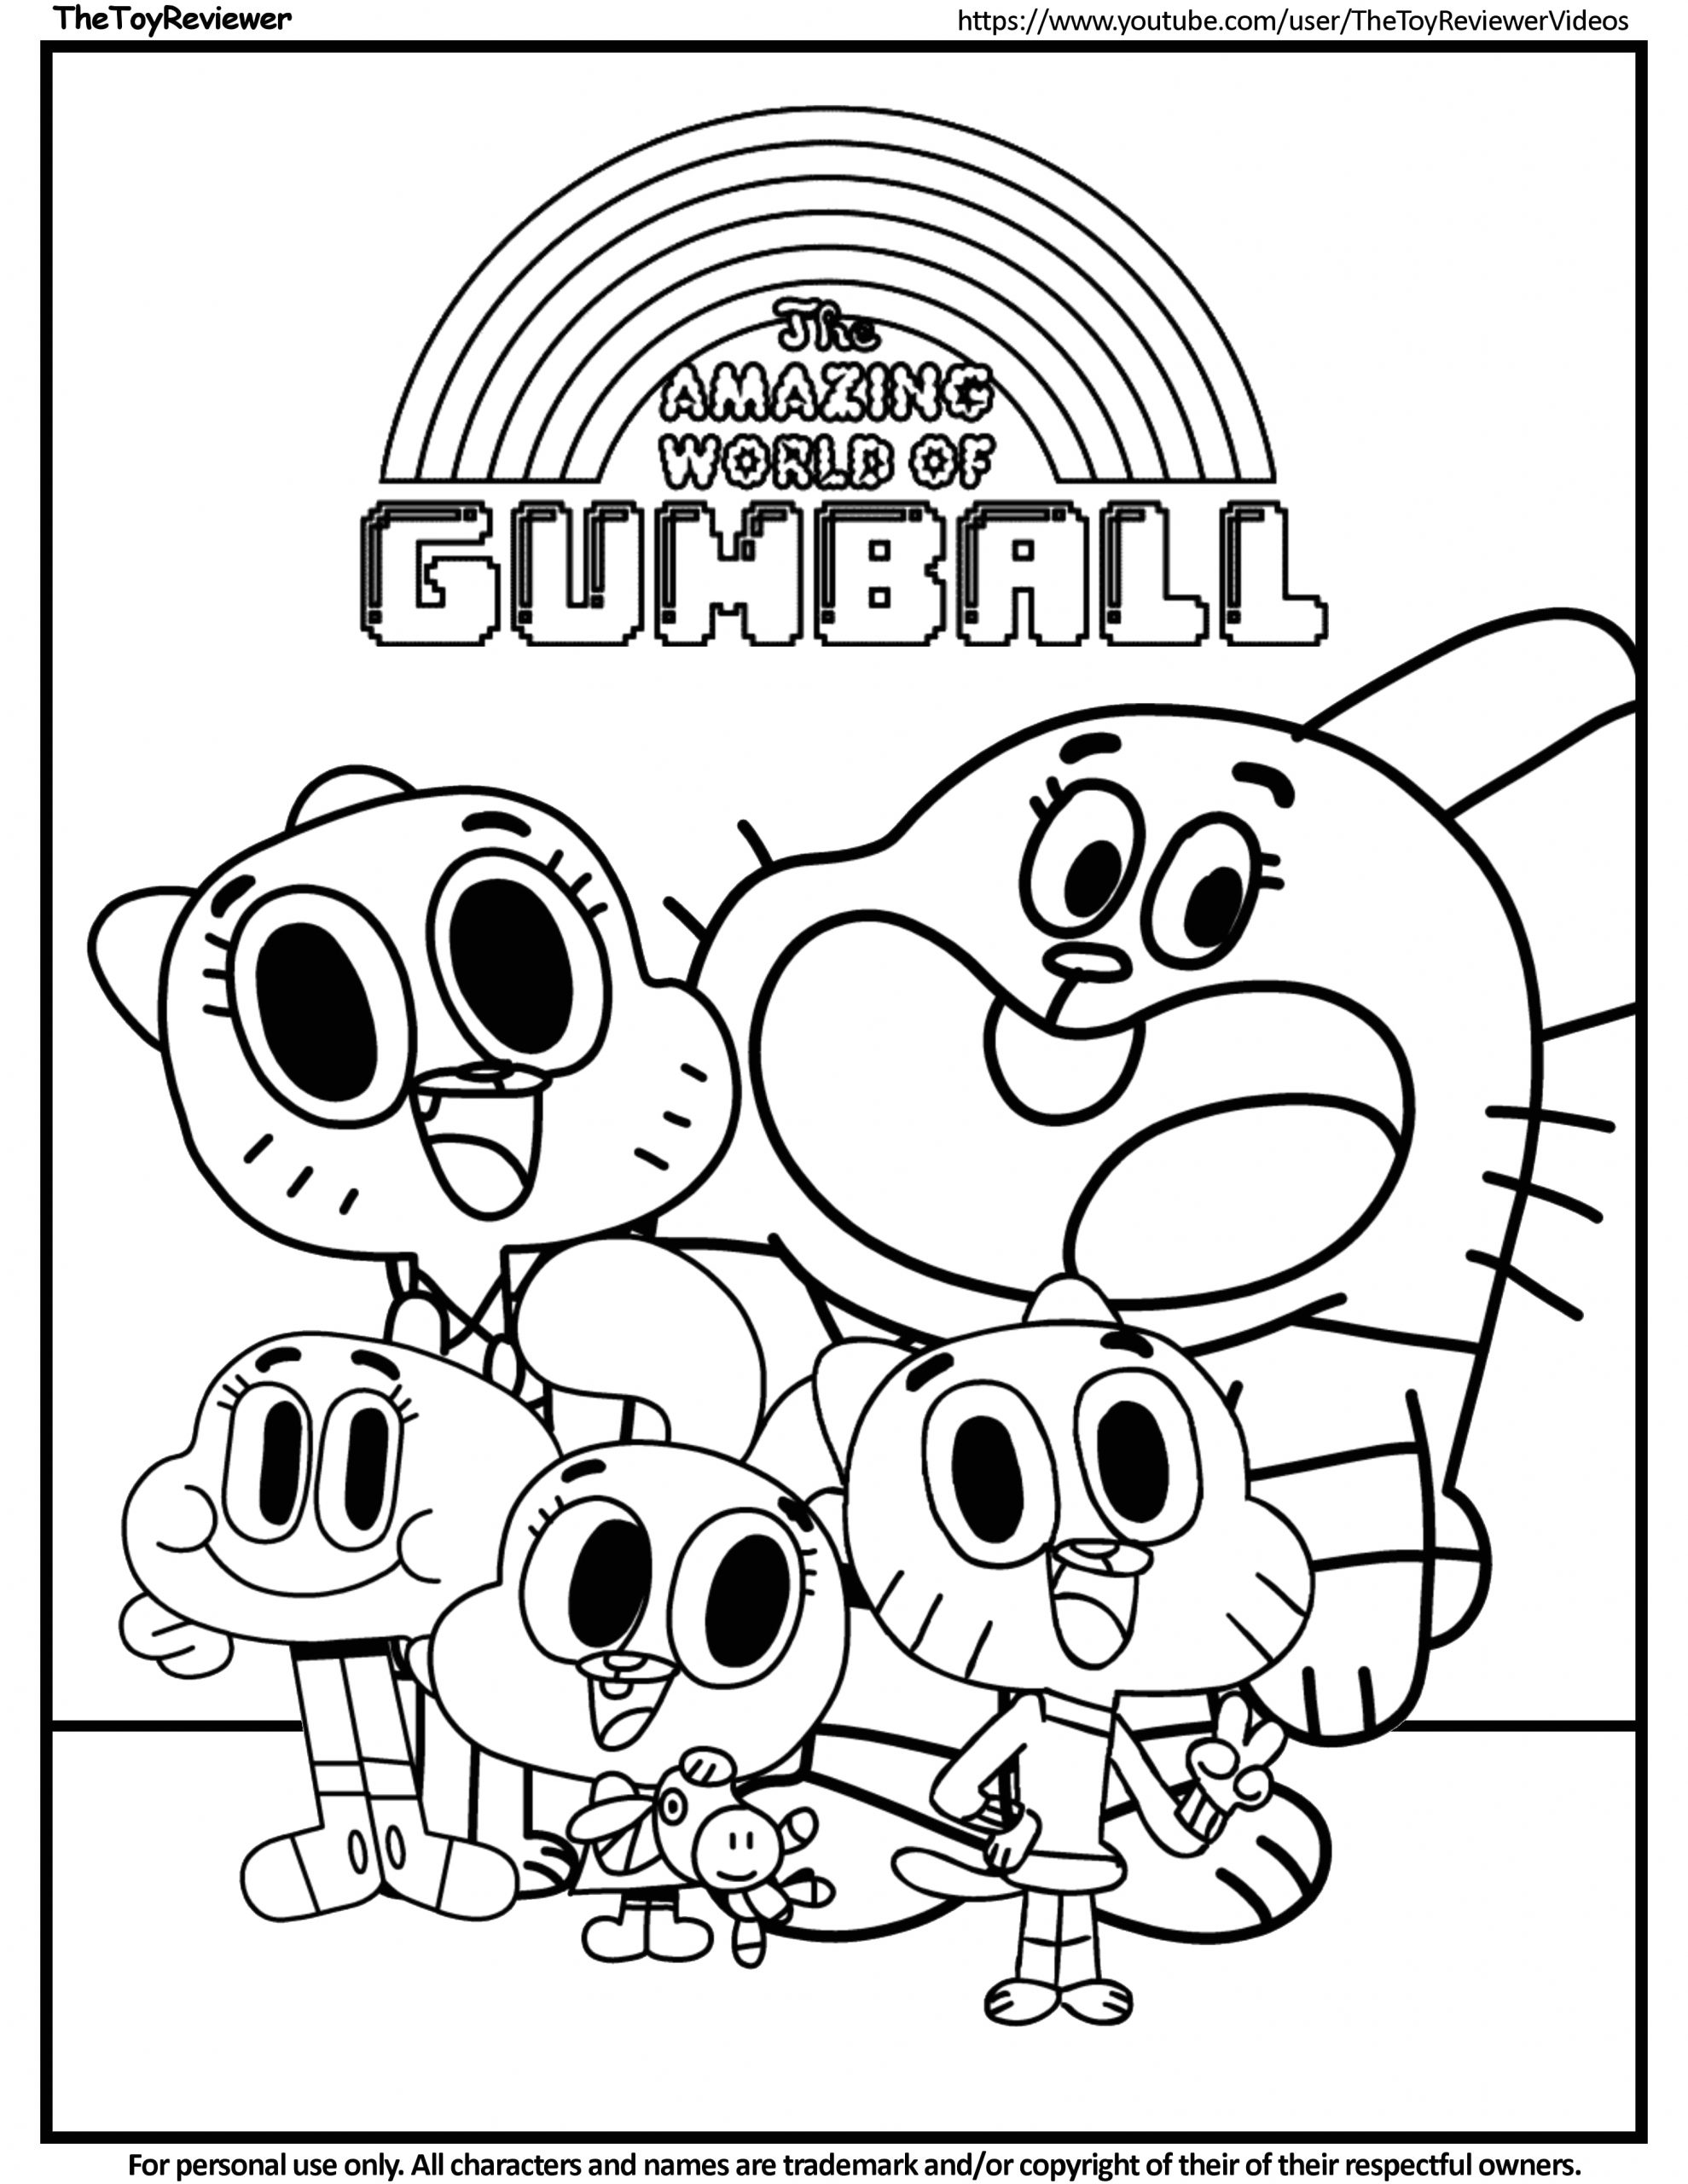 Coloring Pages the Amazing World Of Gumball Here is the Amazing World Of Gumball Coloring Page